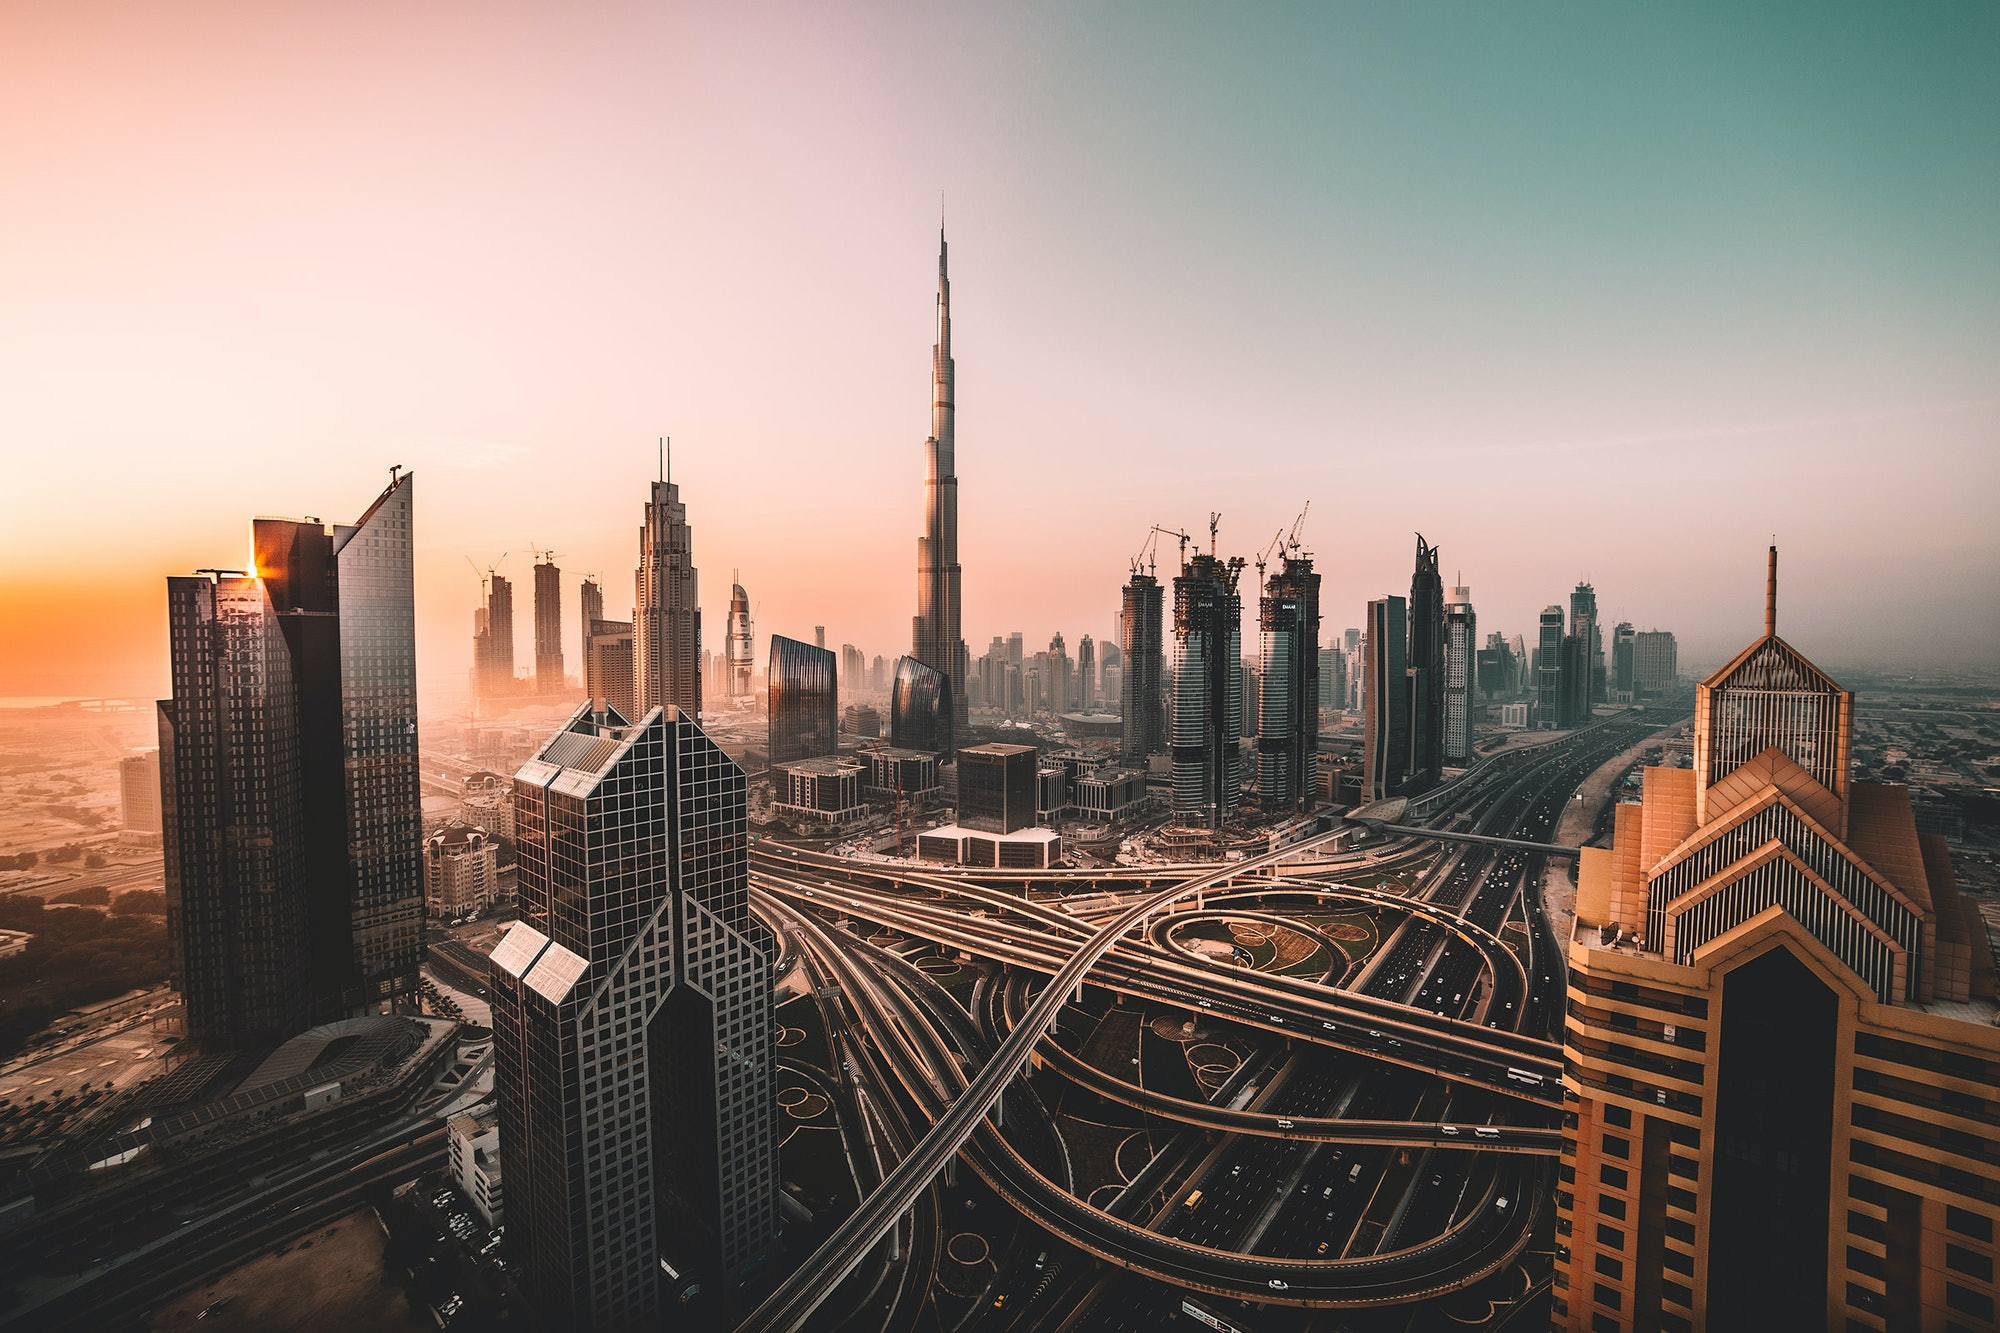 Dubai: unlikely to act as a model for Mars.